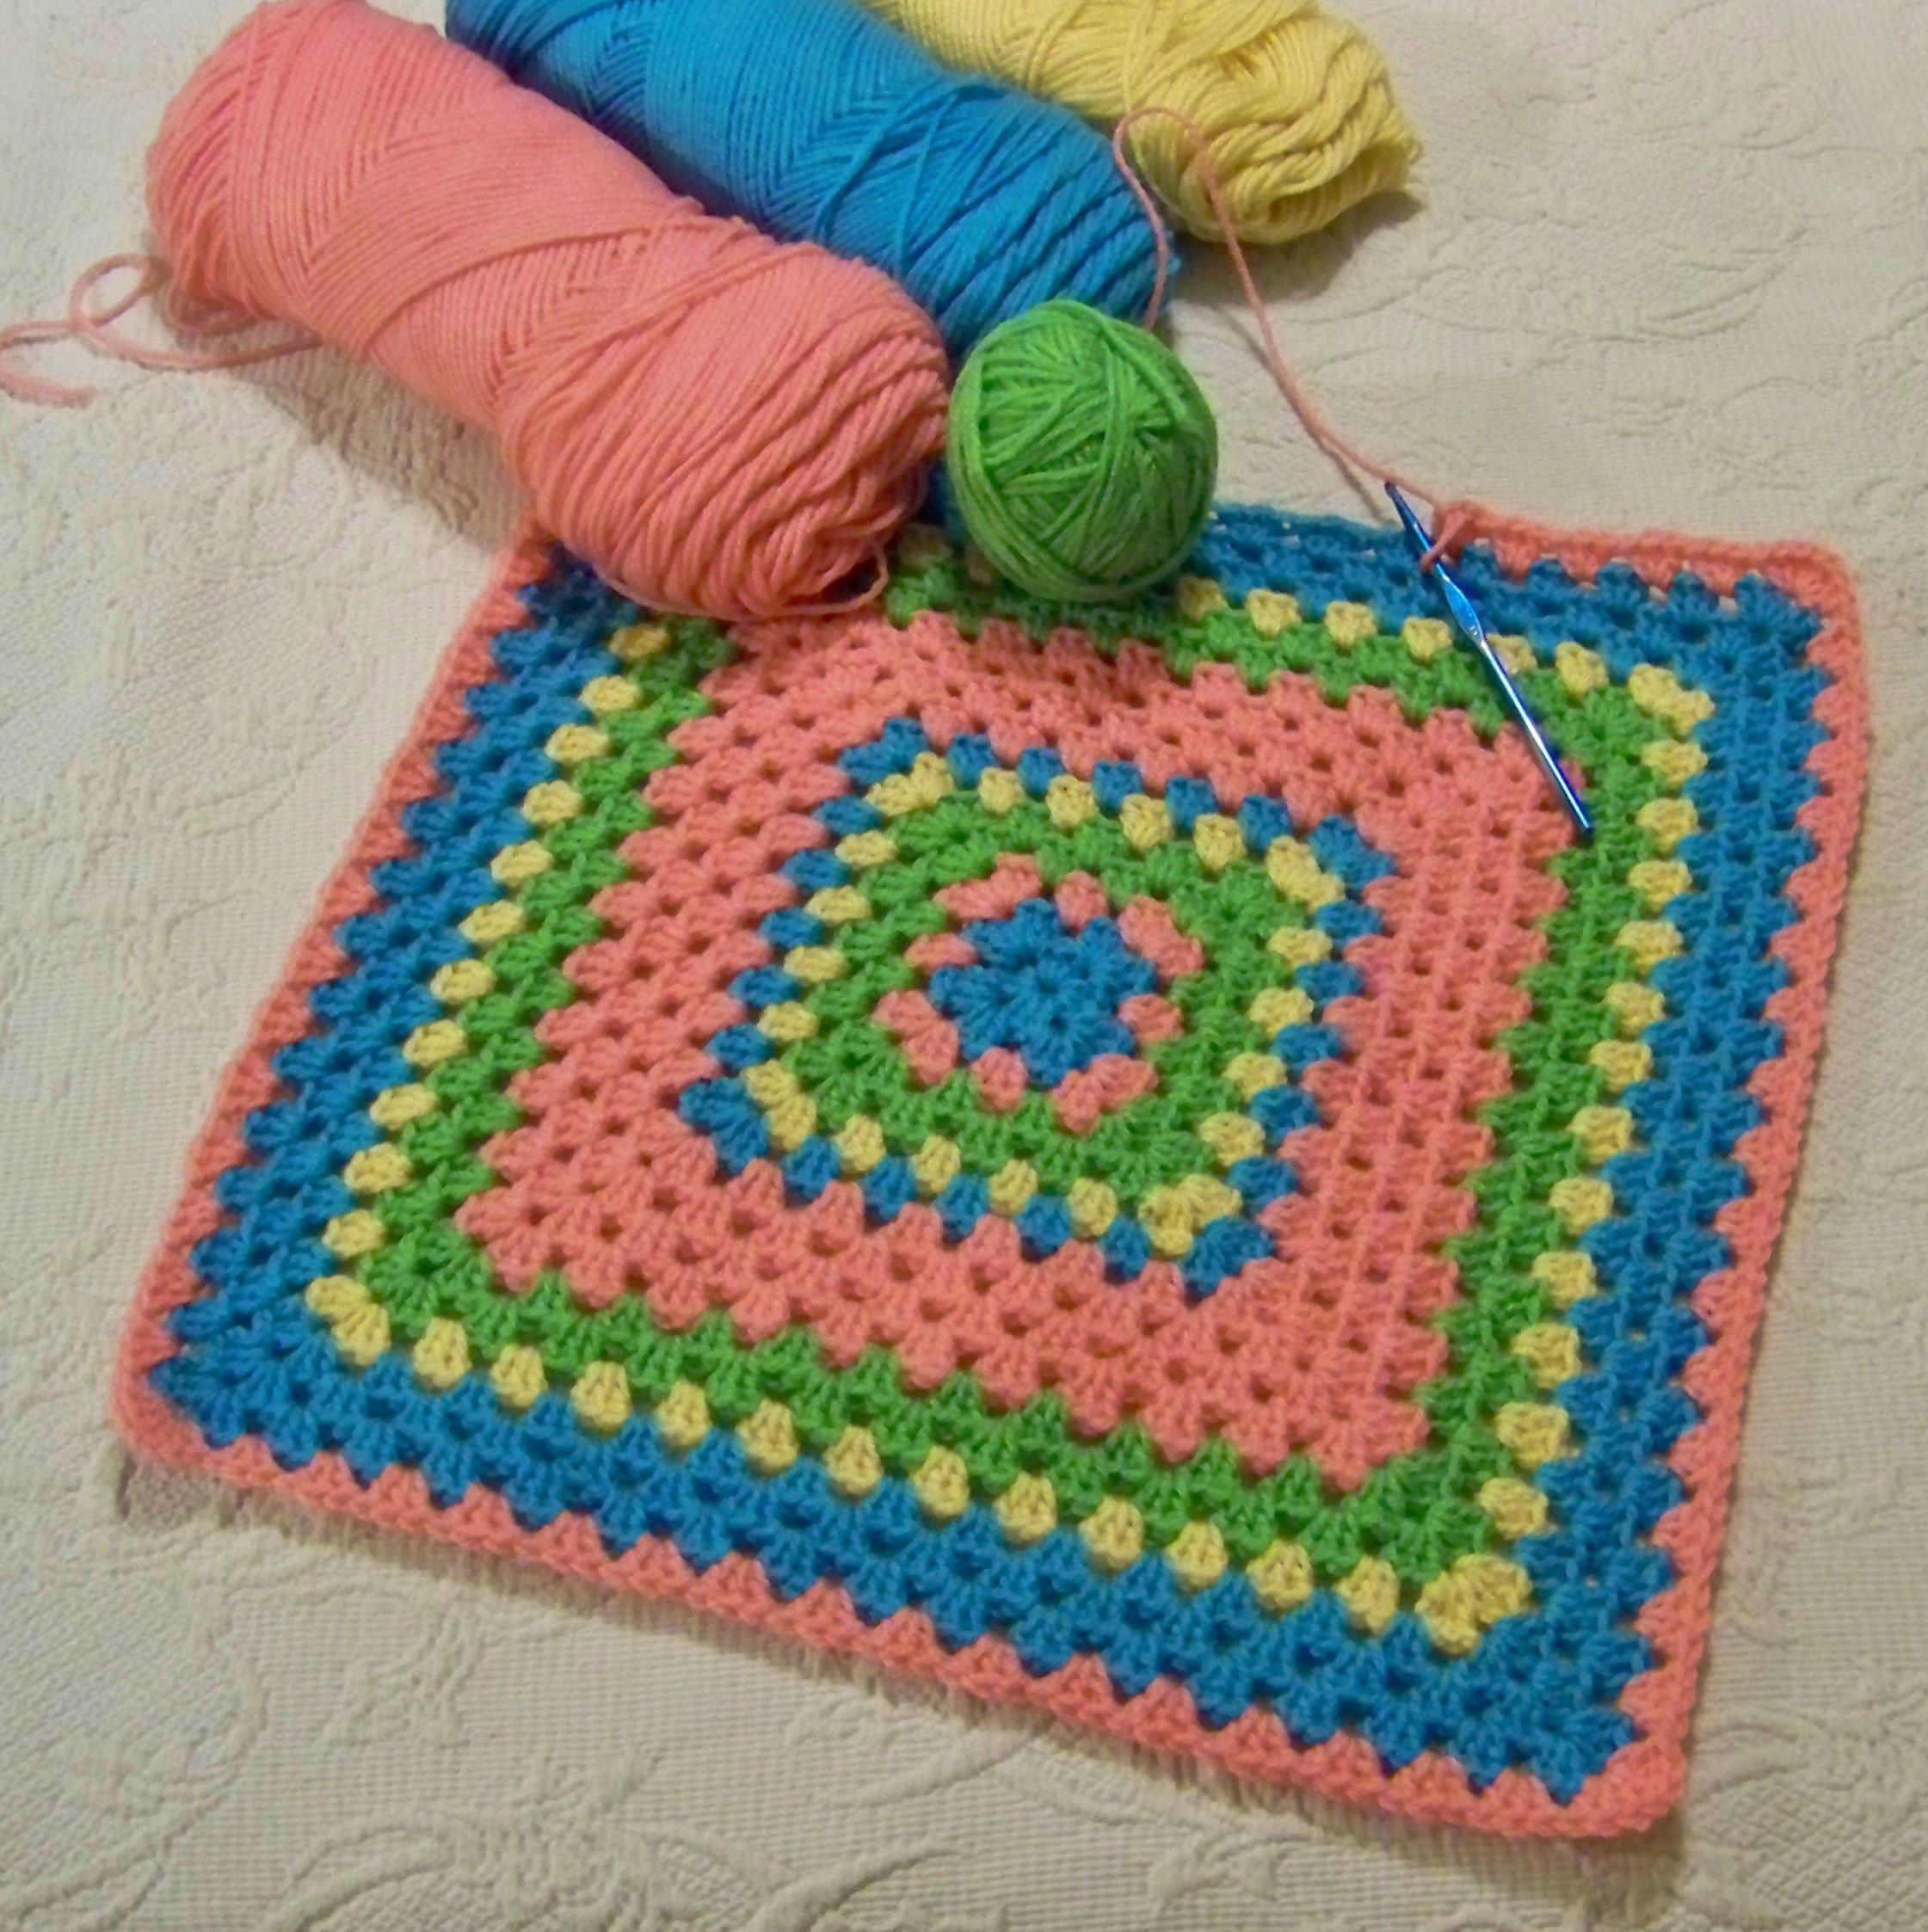 Cheerful crocheted afghan I love making for Project Linus...it's my favorite of all.